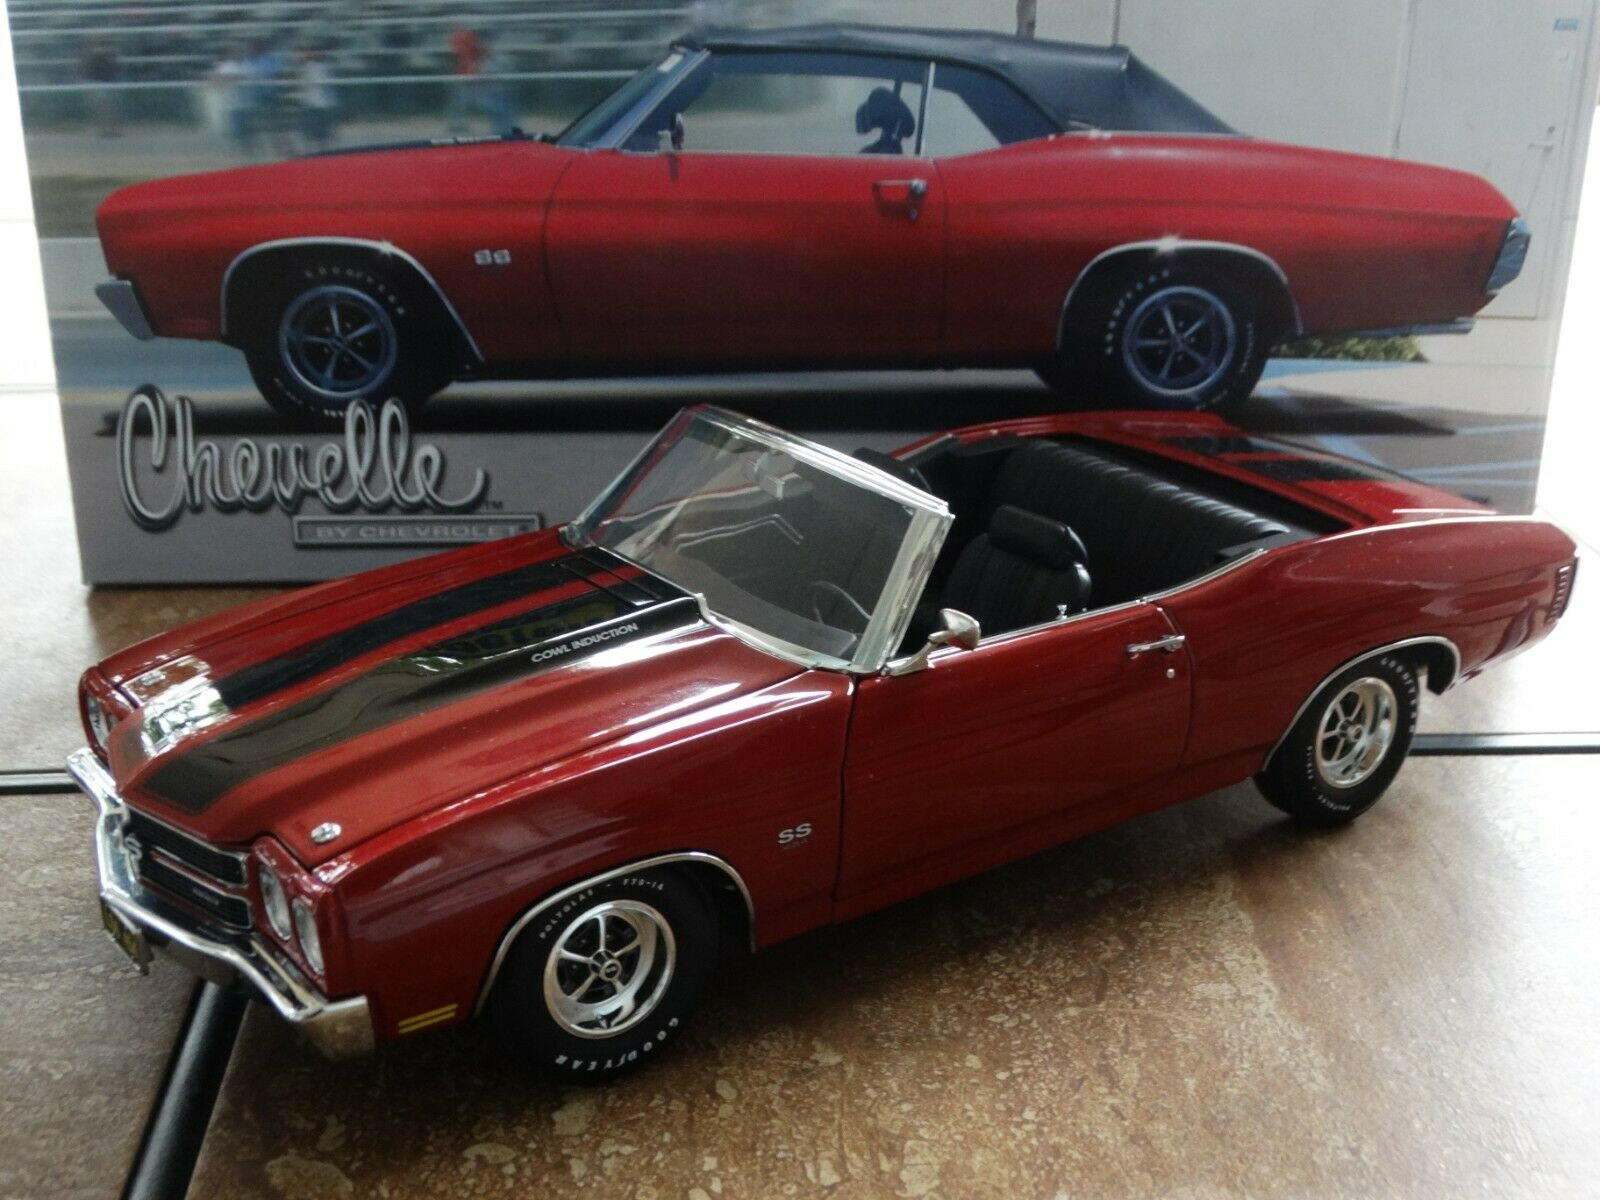 Lane Exact Detail 1970 Chevy Chevelle SS 454 LS6 ConGrünible 1 18 Diecast Car